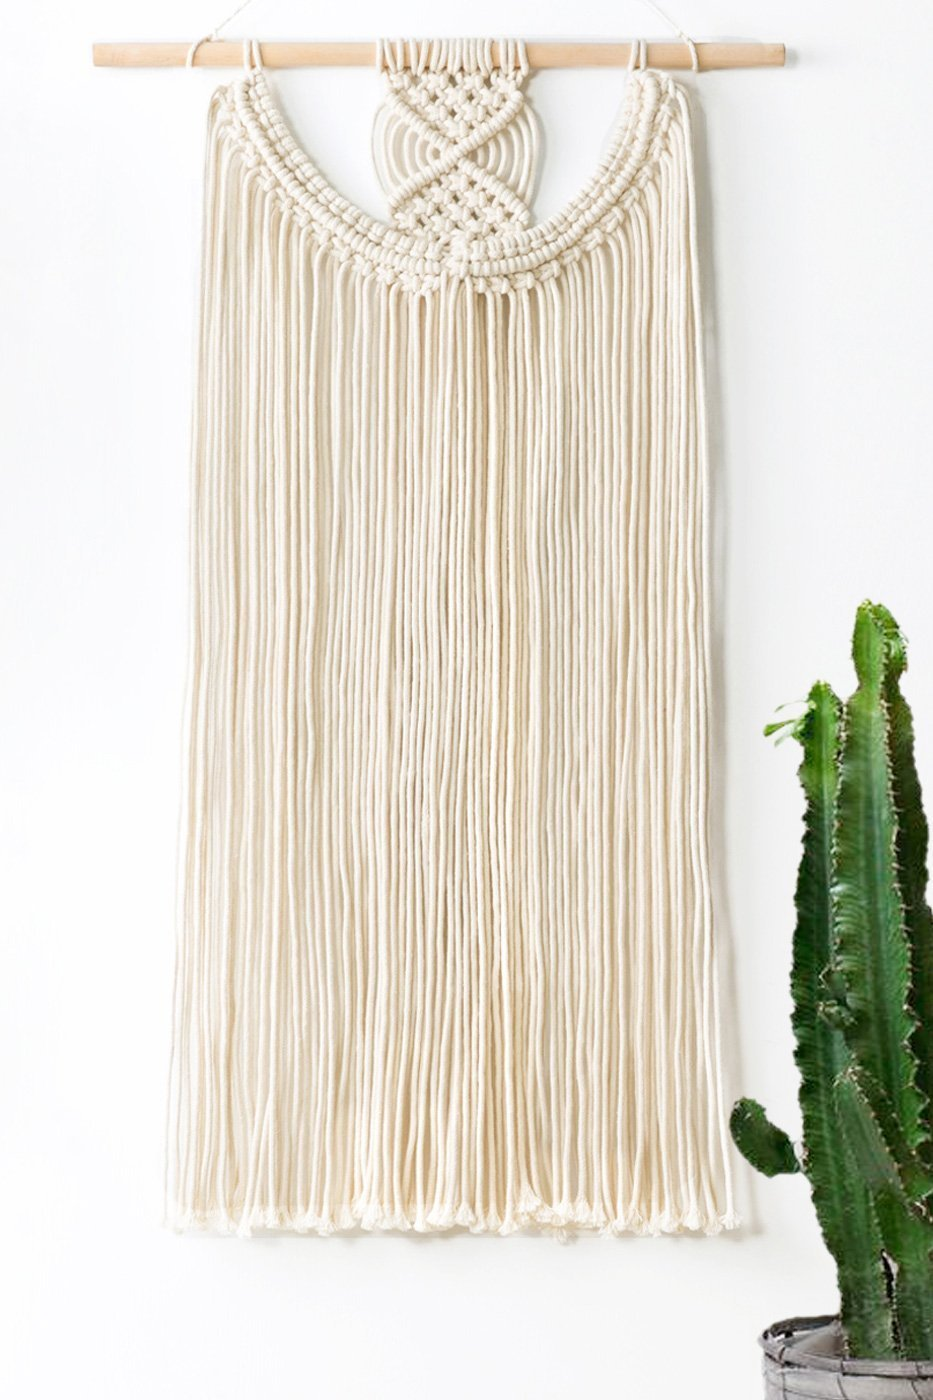 Mkono Macrame Wall Hanging Fringe Woven Wall Decor